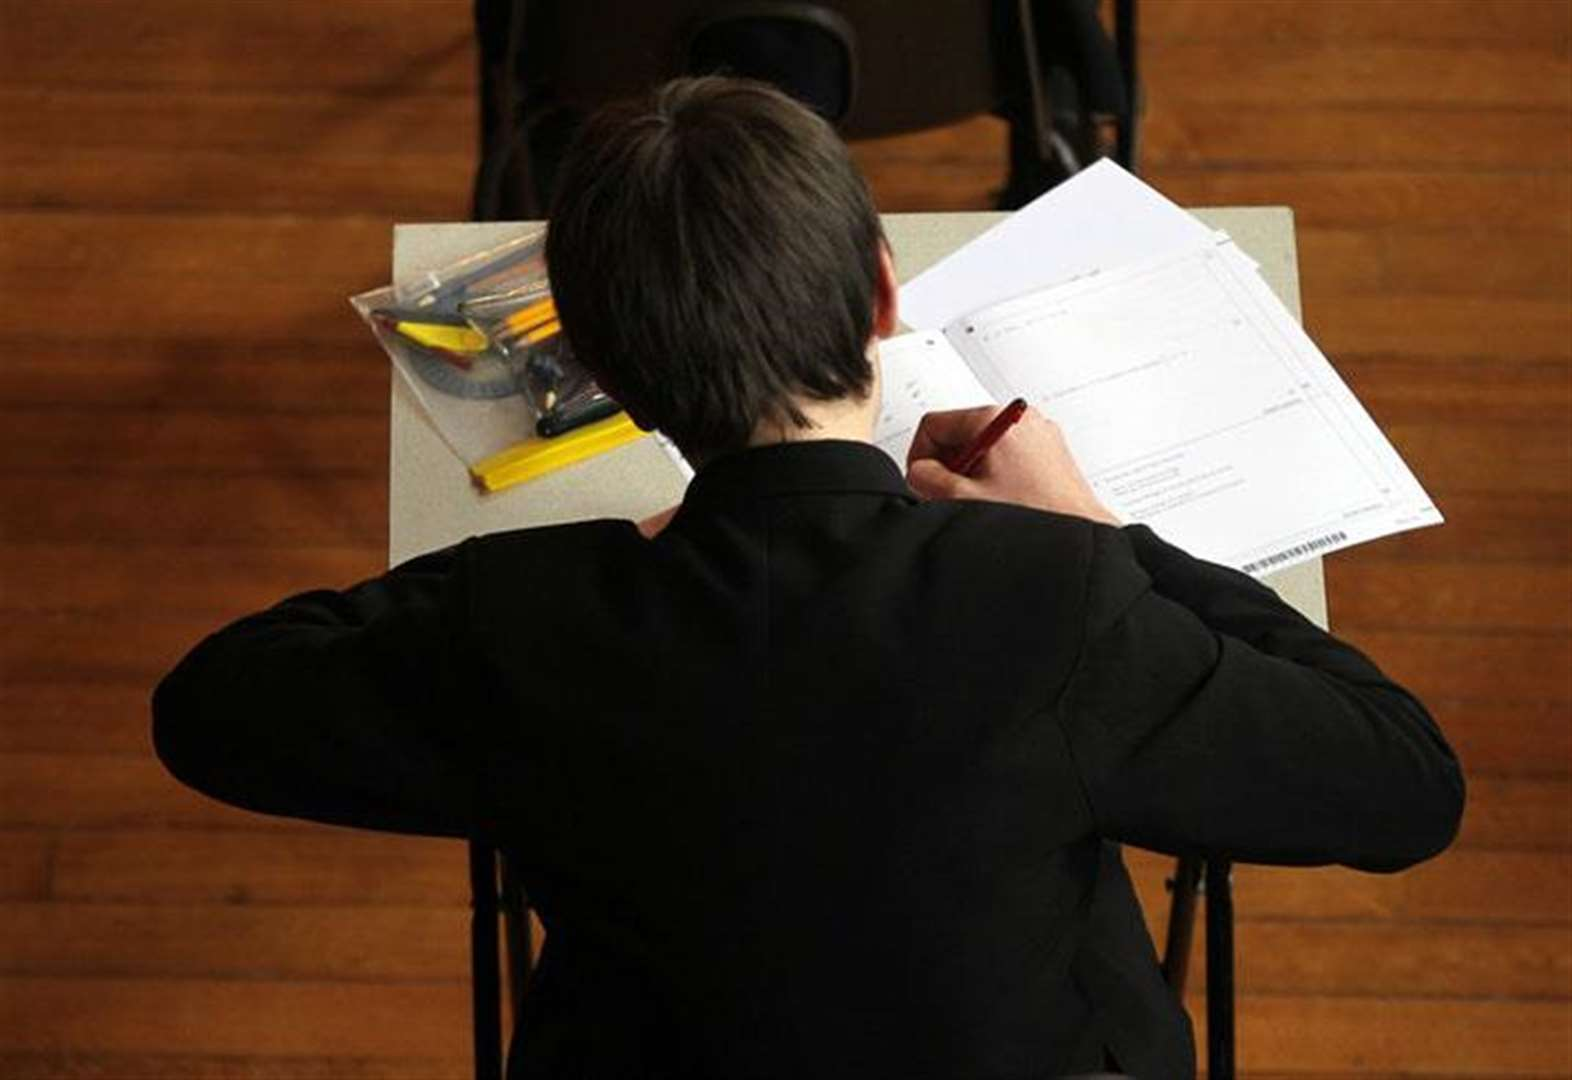 More than 1,800 Cambridgeshire teenagers face compulsory resits after failing English and maths GCSEs